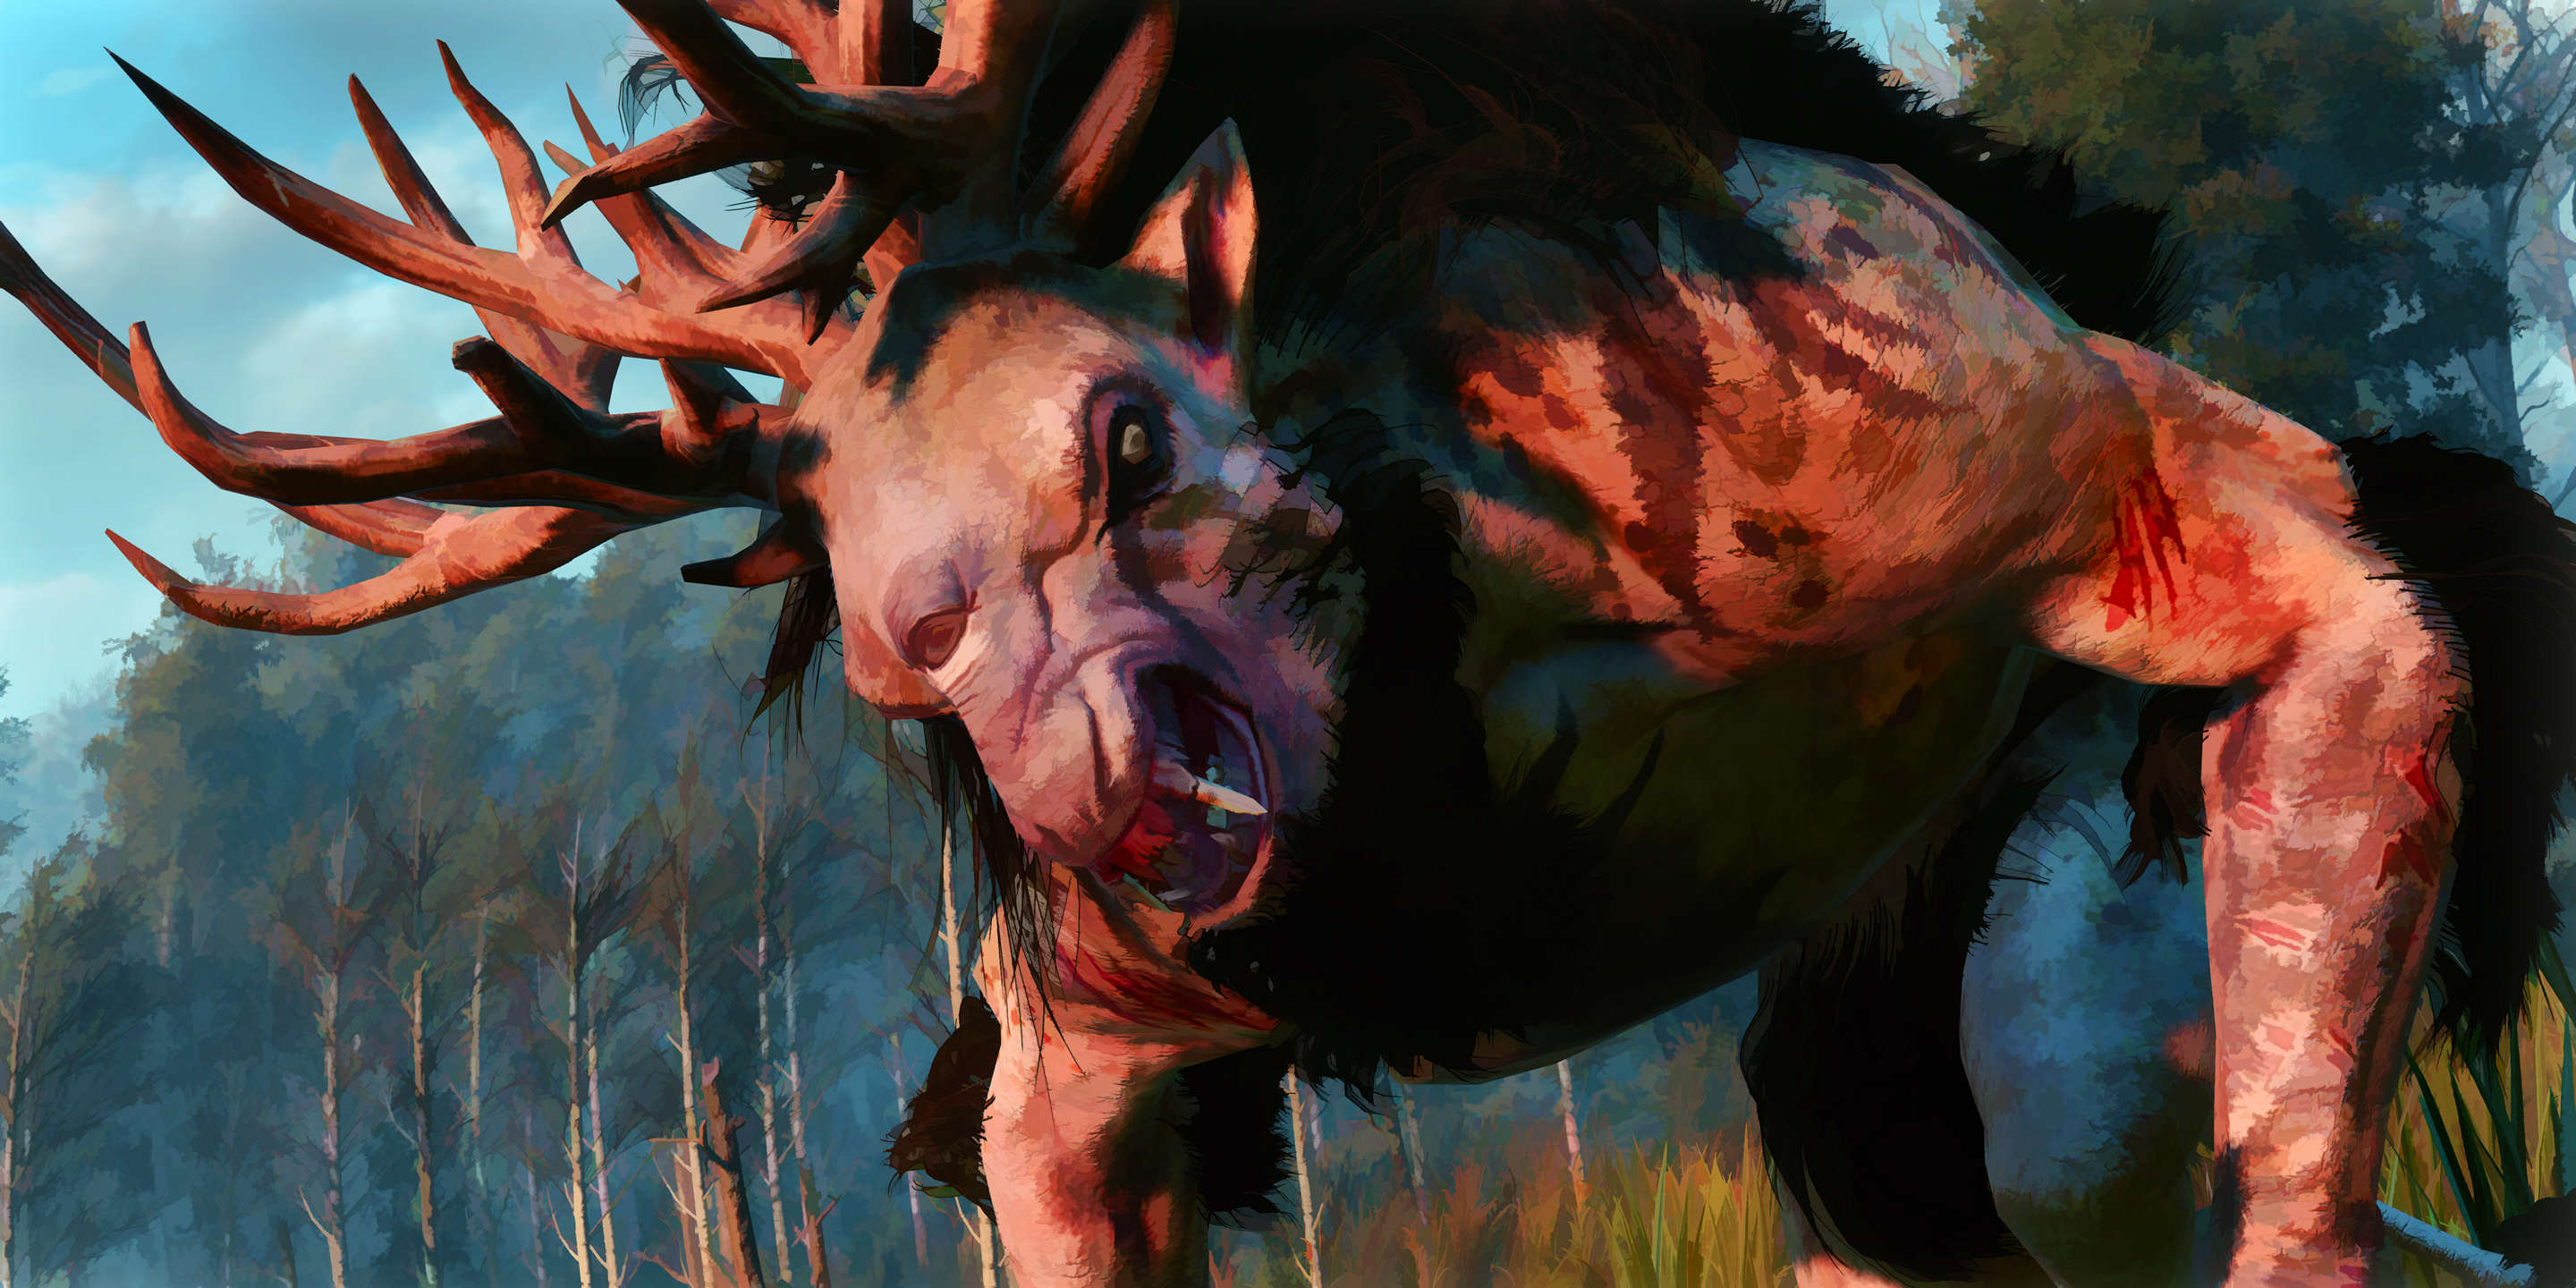 This Guy Turned His Witcher 3 Screenshots Into Works Of Art Rvi7zcM